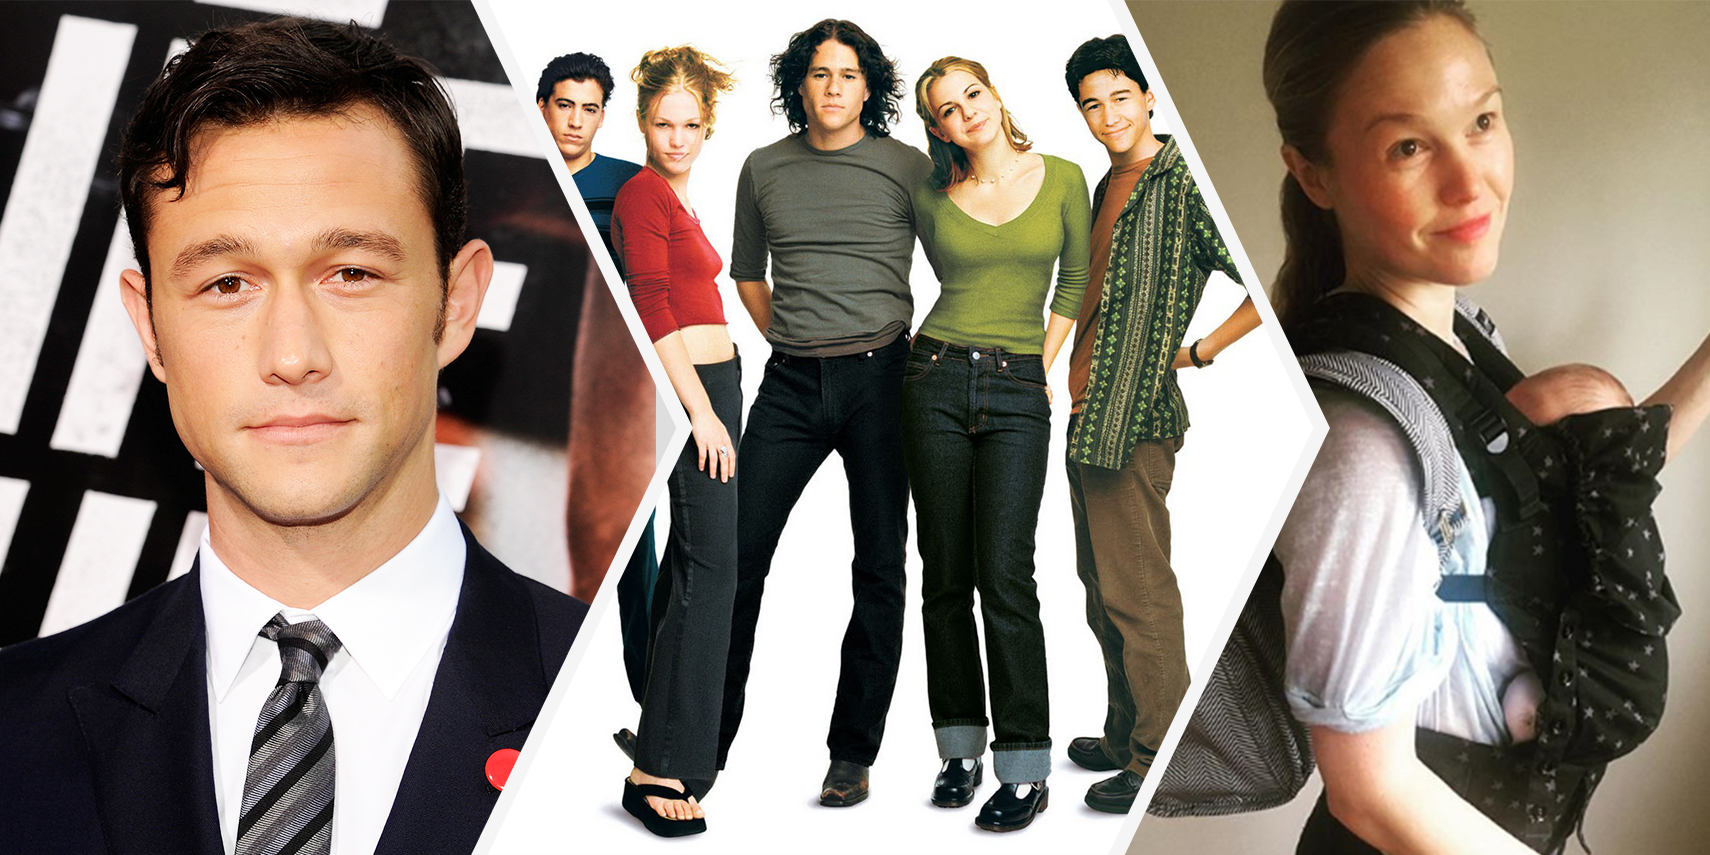 Ten Things I Hate About You: 10 Things I Hate About You: What The Cast Looked Like In